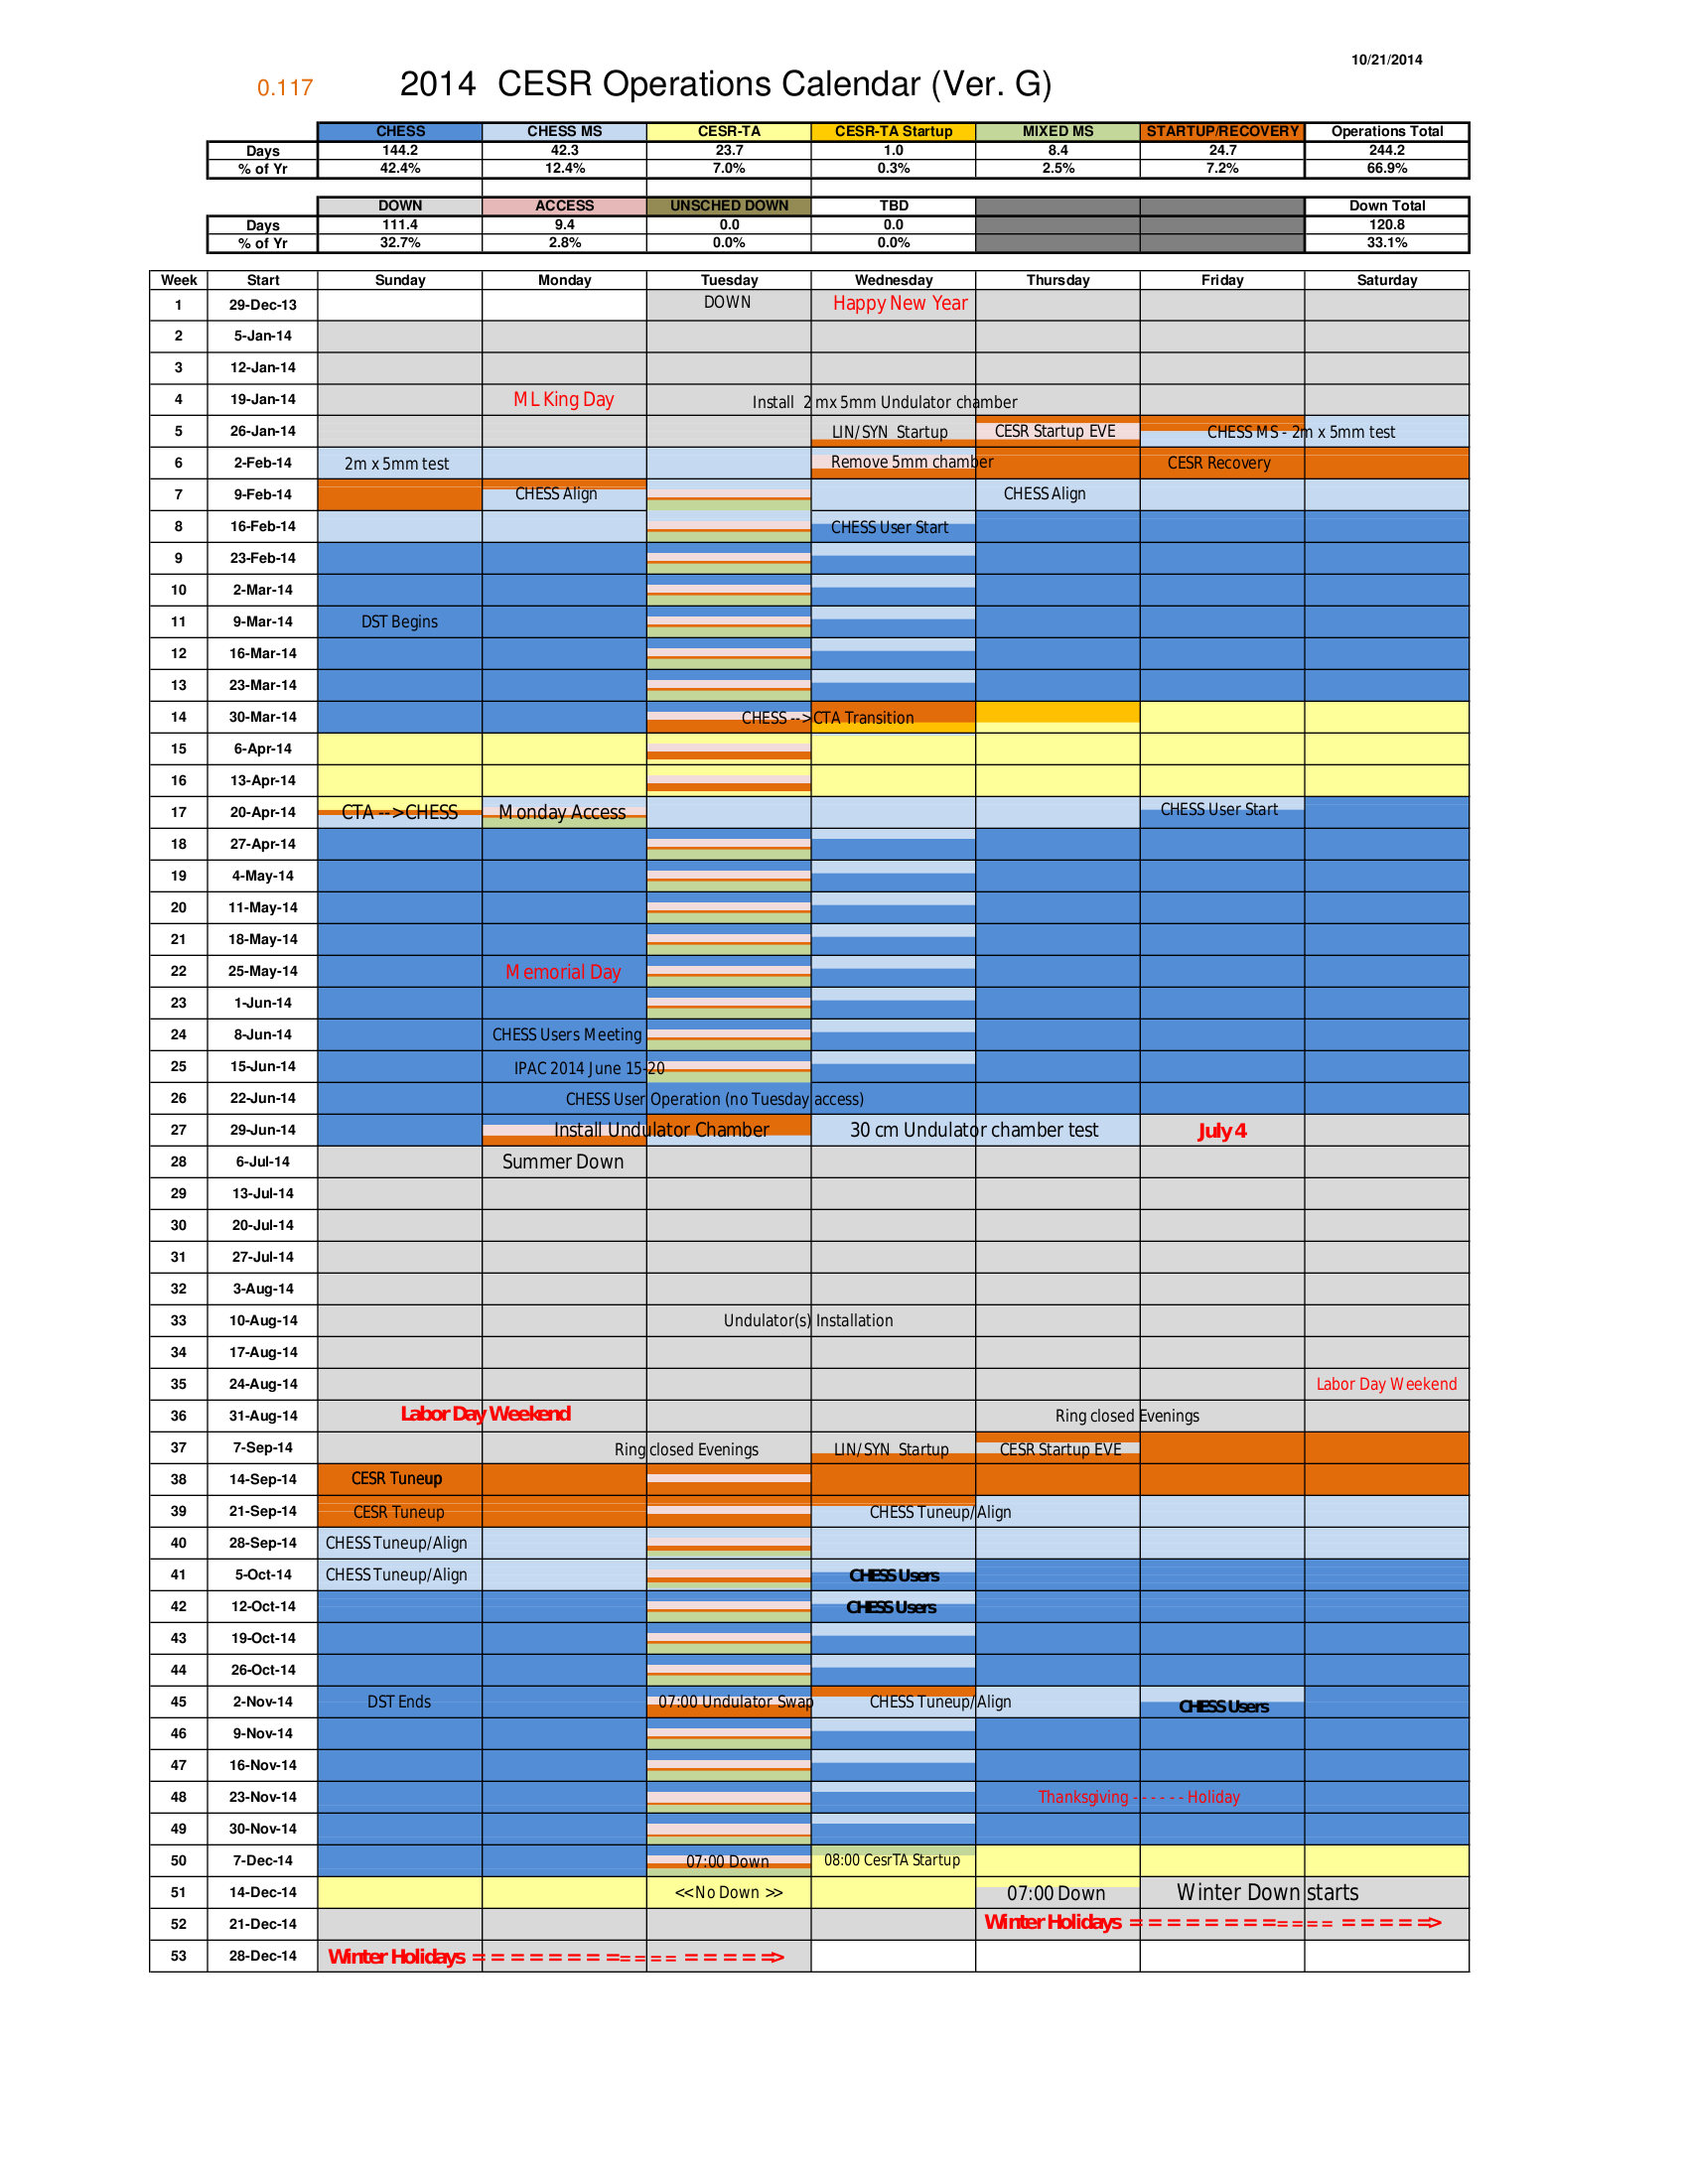 2014_CESR_Sched_G.png